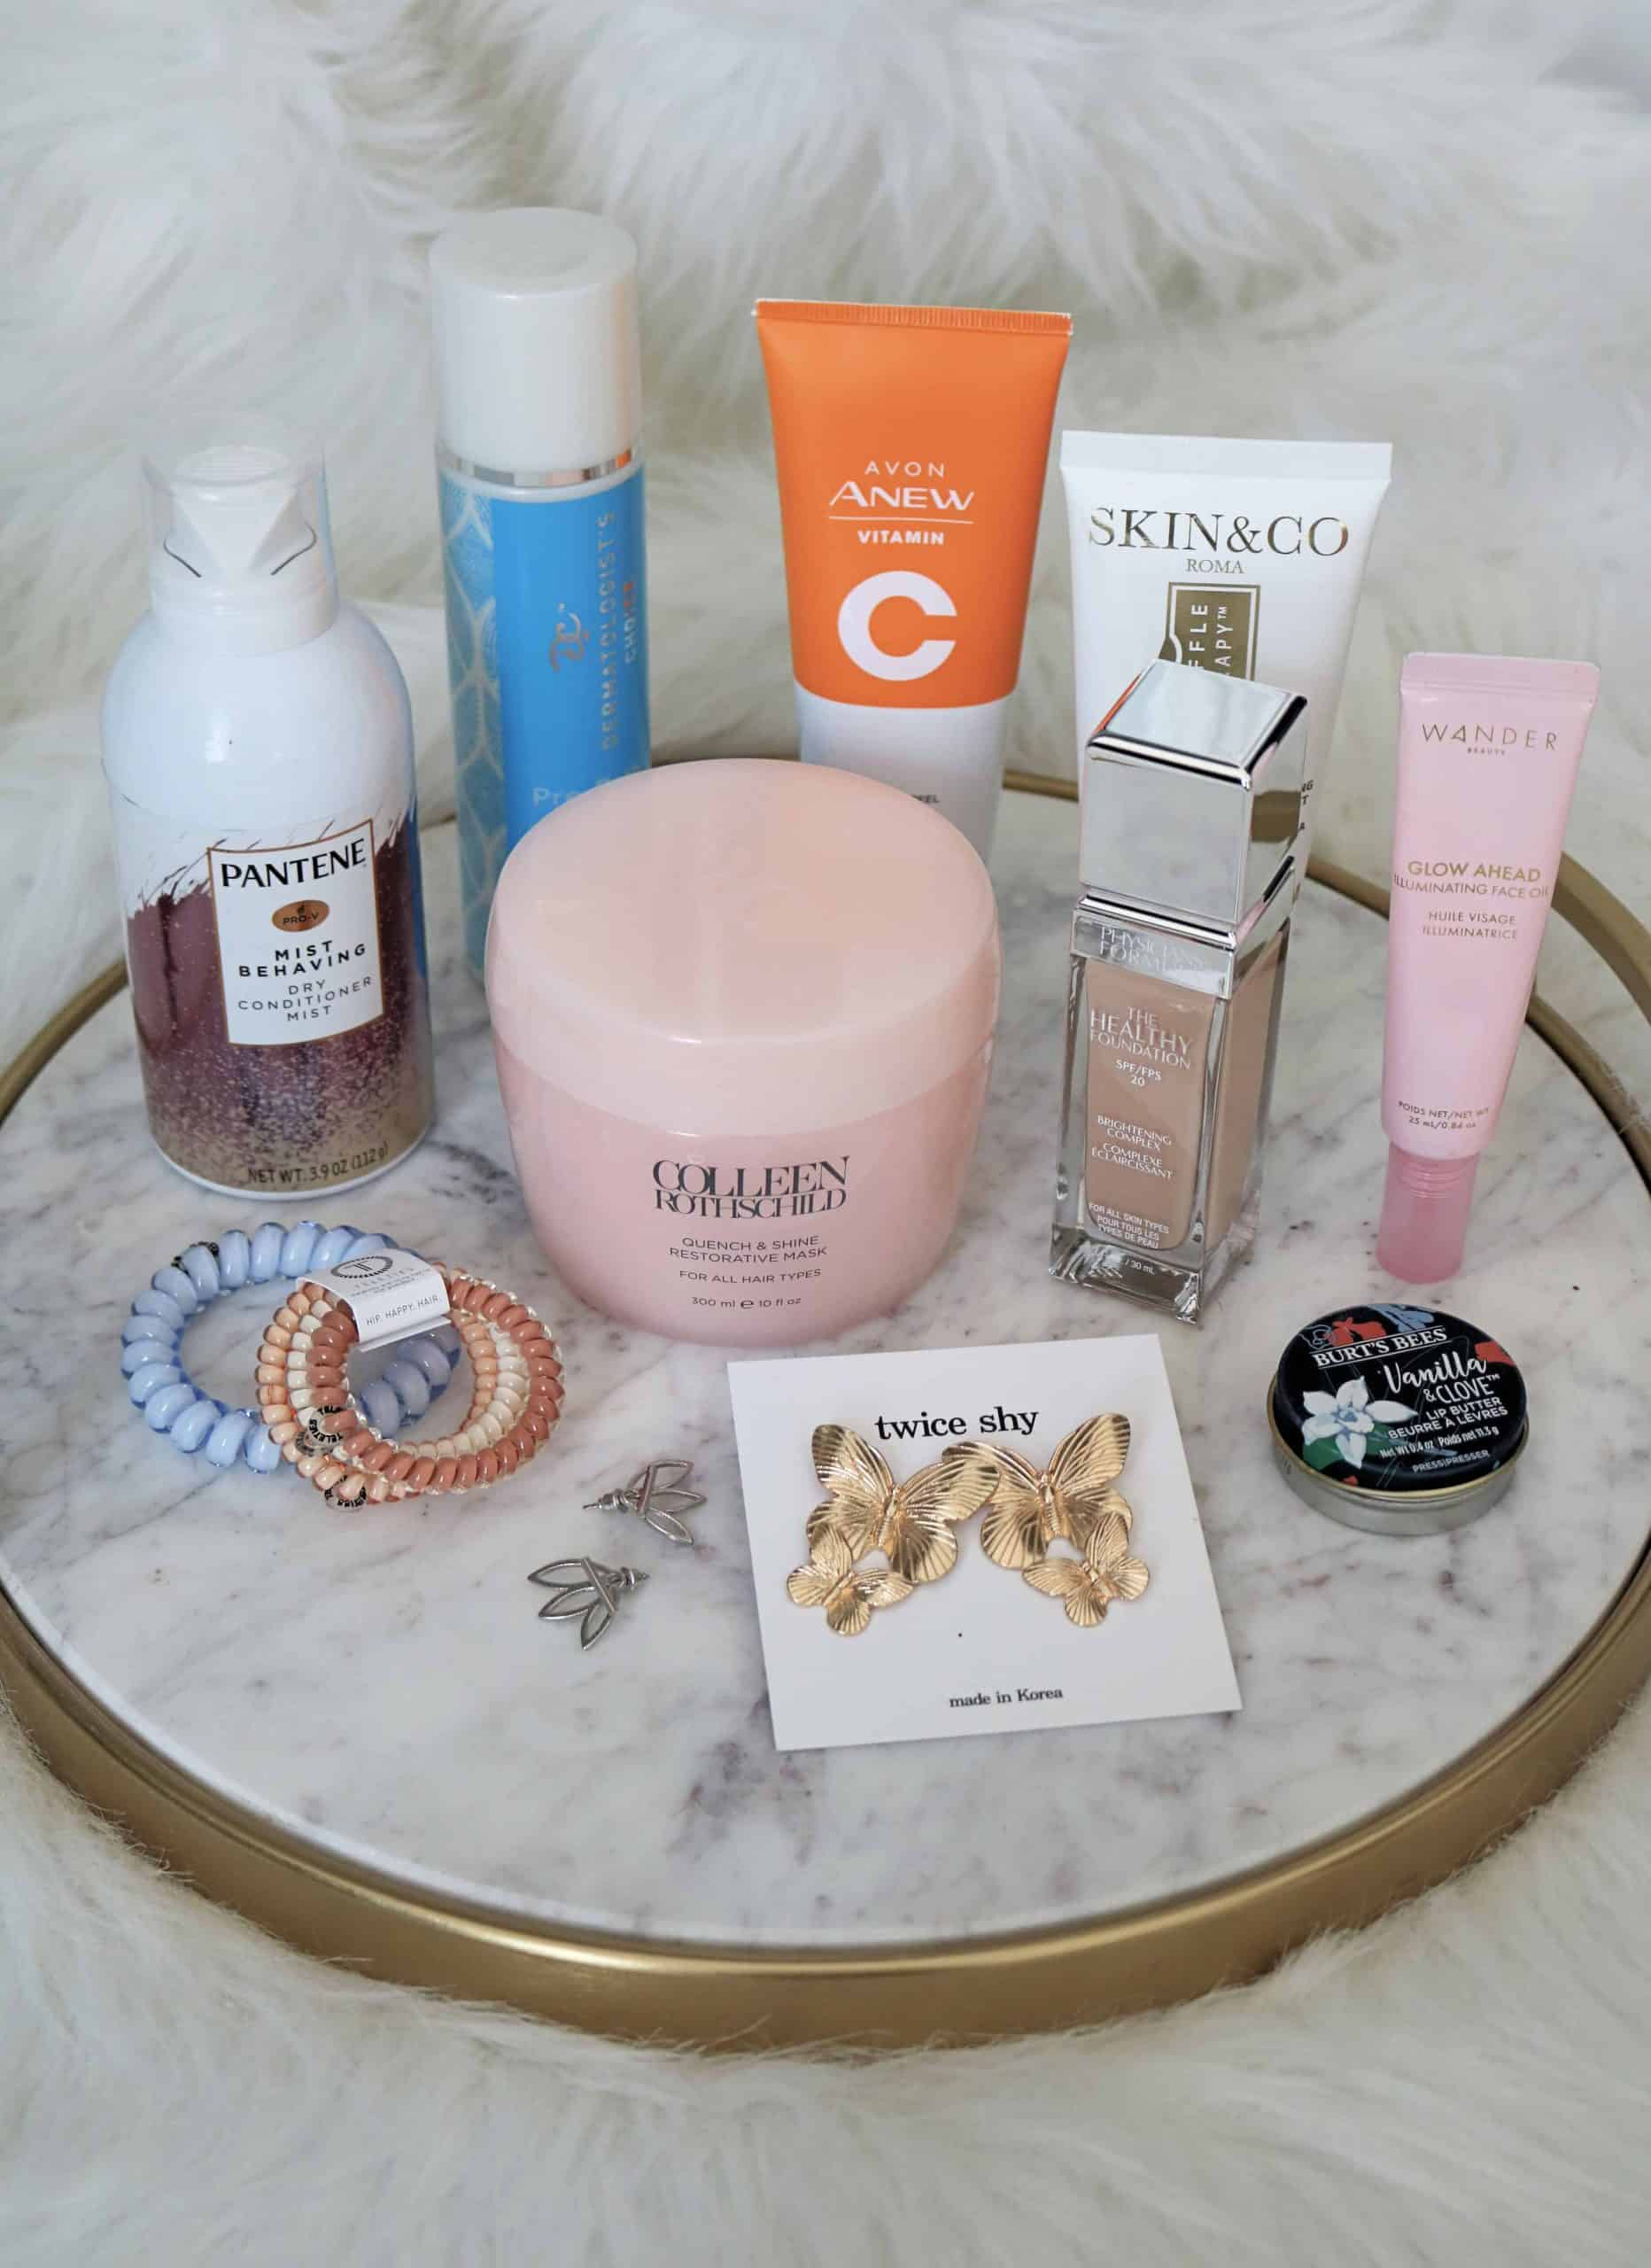 Check out my Fall Beauty and Fashion Favorites including must-have makeup, skincare, and fashion items. You'll want to add these to your beauty collection! #monthlyfavorites #beautyfavorites #makeup #skincare